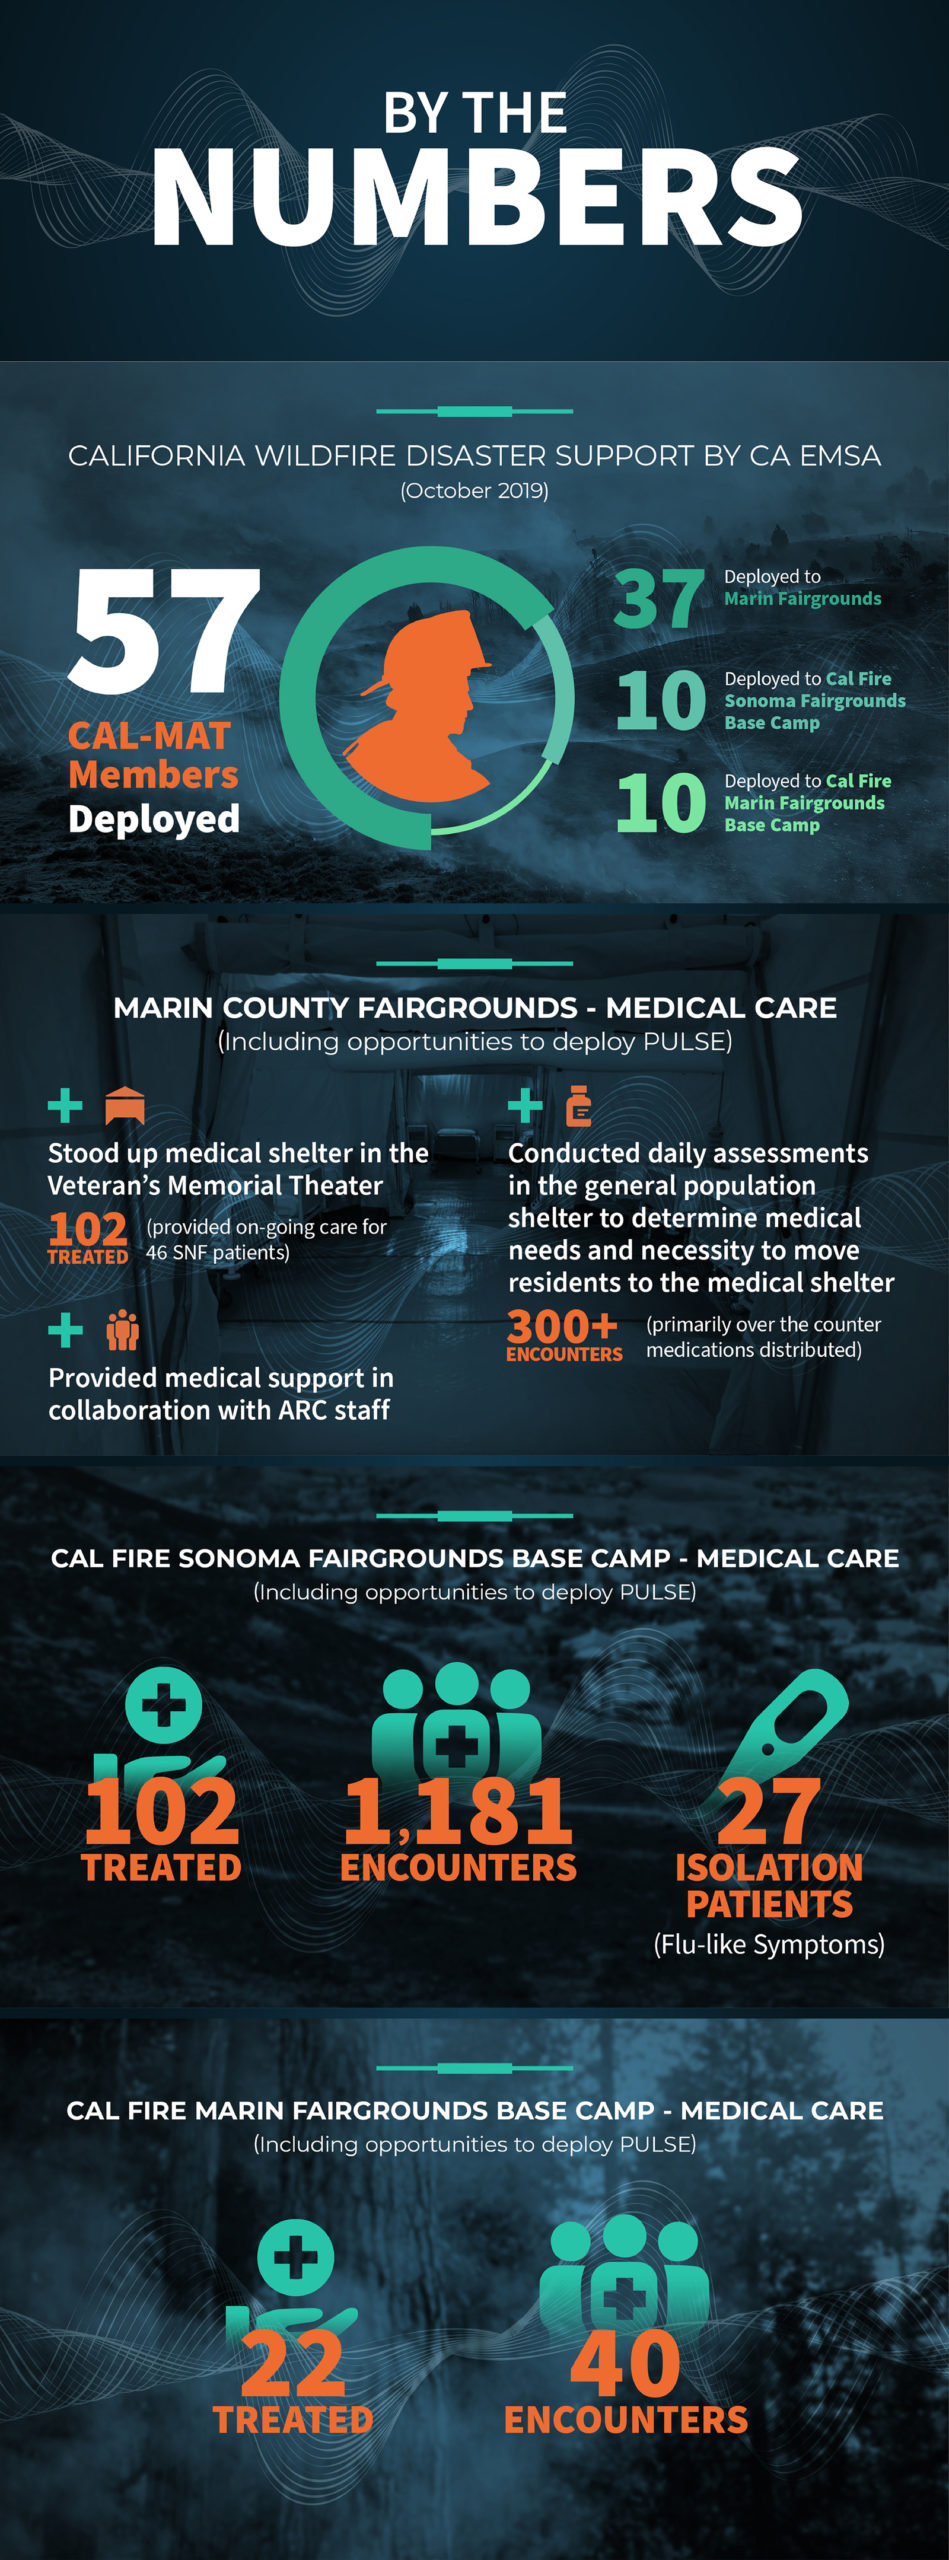 infographic describing California Wildfire Disaster Support by CA EMSA